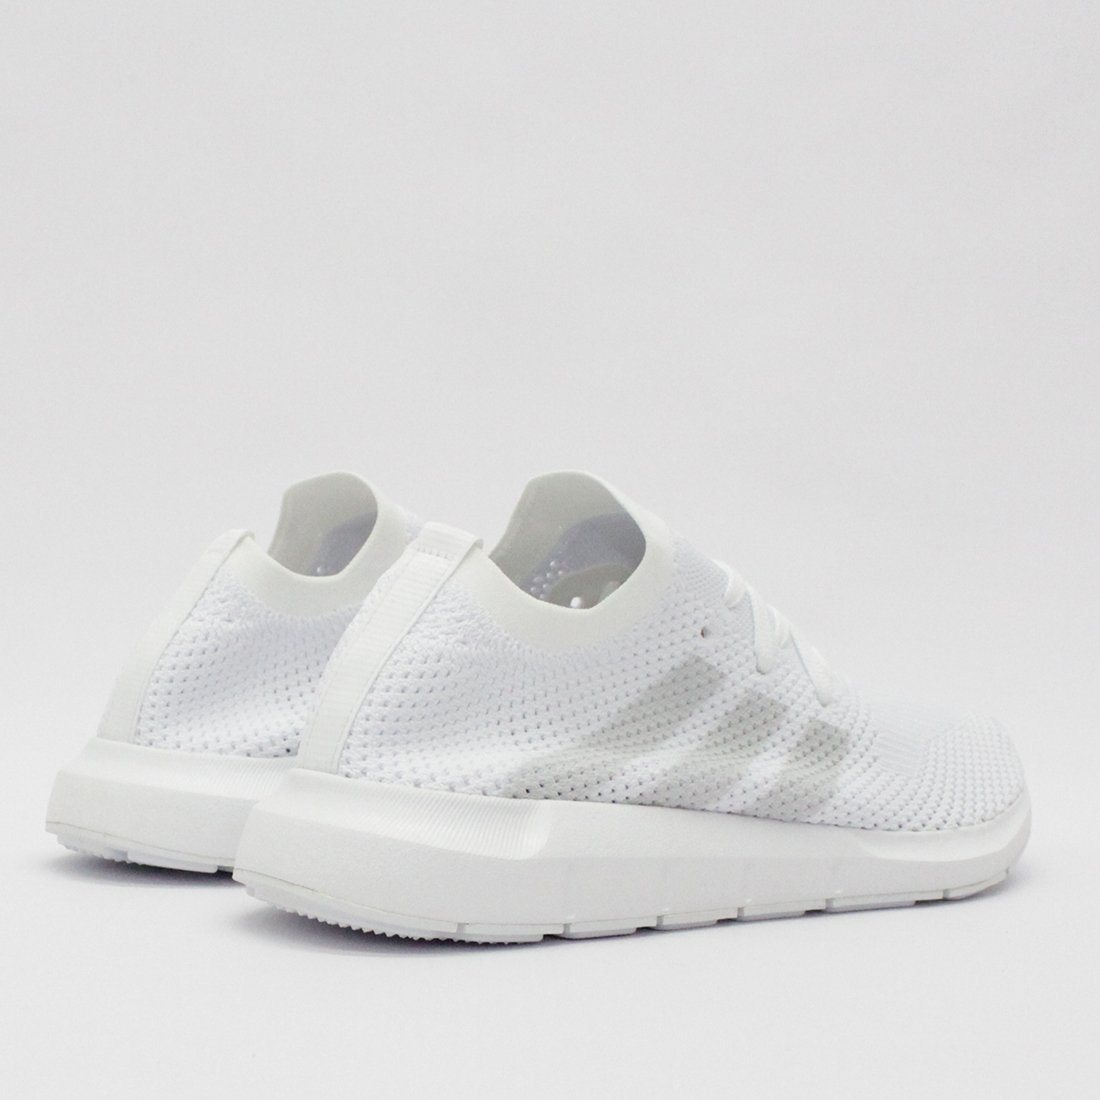 Adidas Originals Swift Run PK White CQ2892